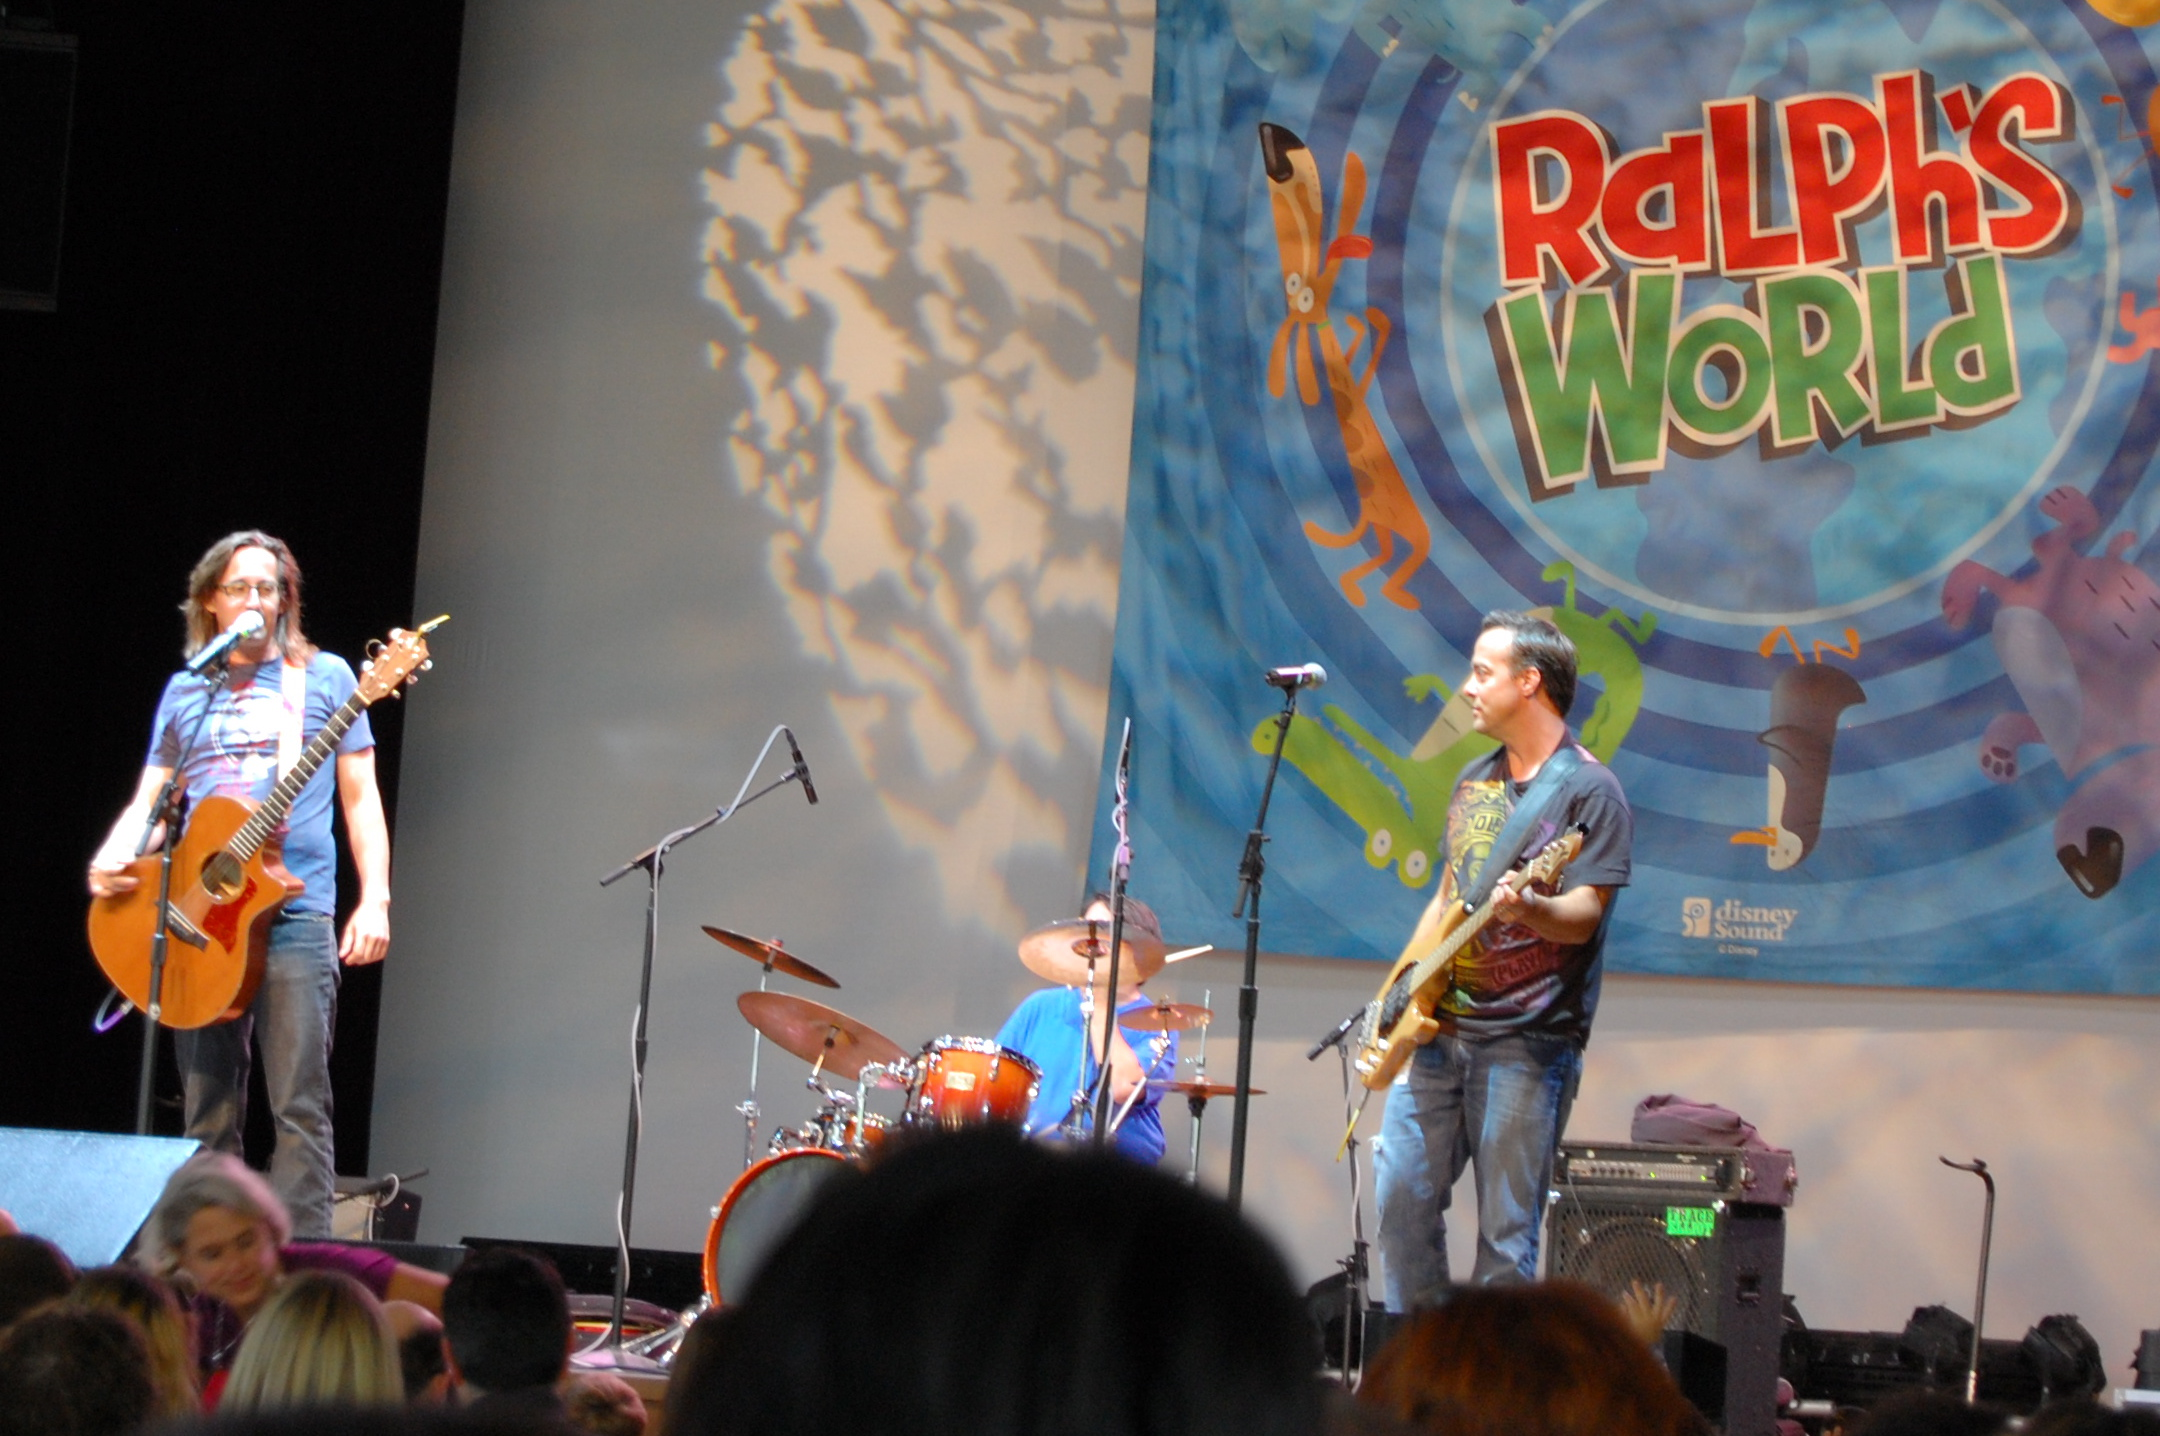 We saw Ralph's World at Ravinia Festival in 2009 - great seats. Thanks grandma!